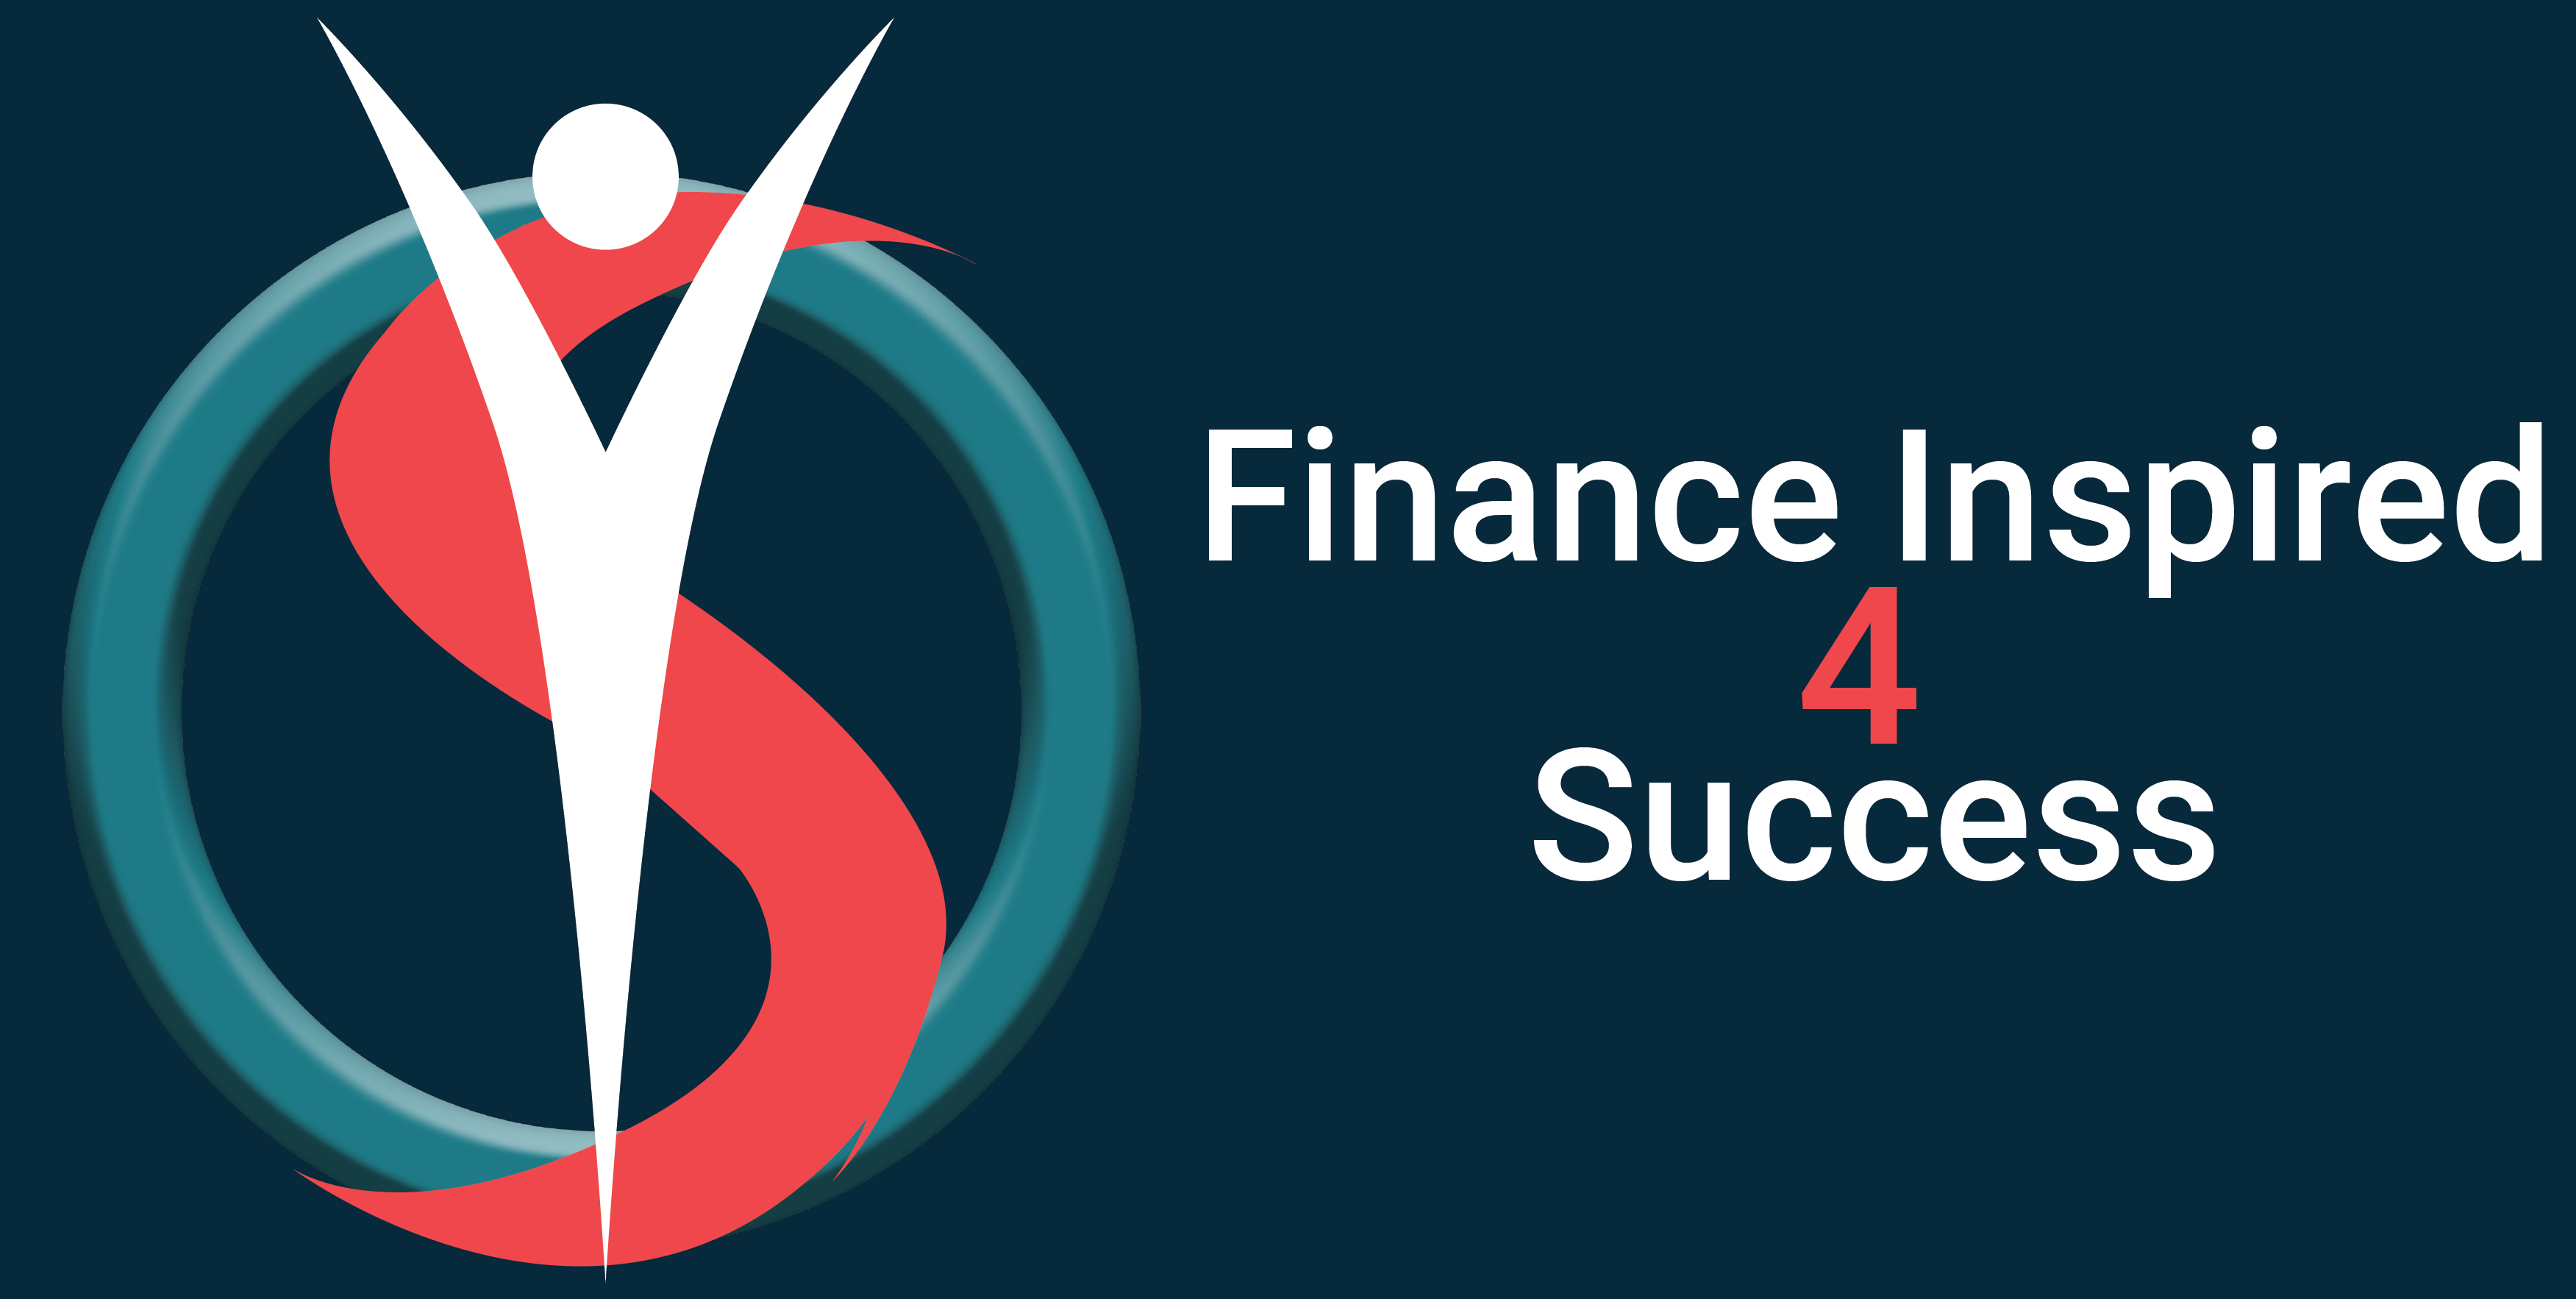 Finance Inspired 4 Success